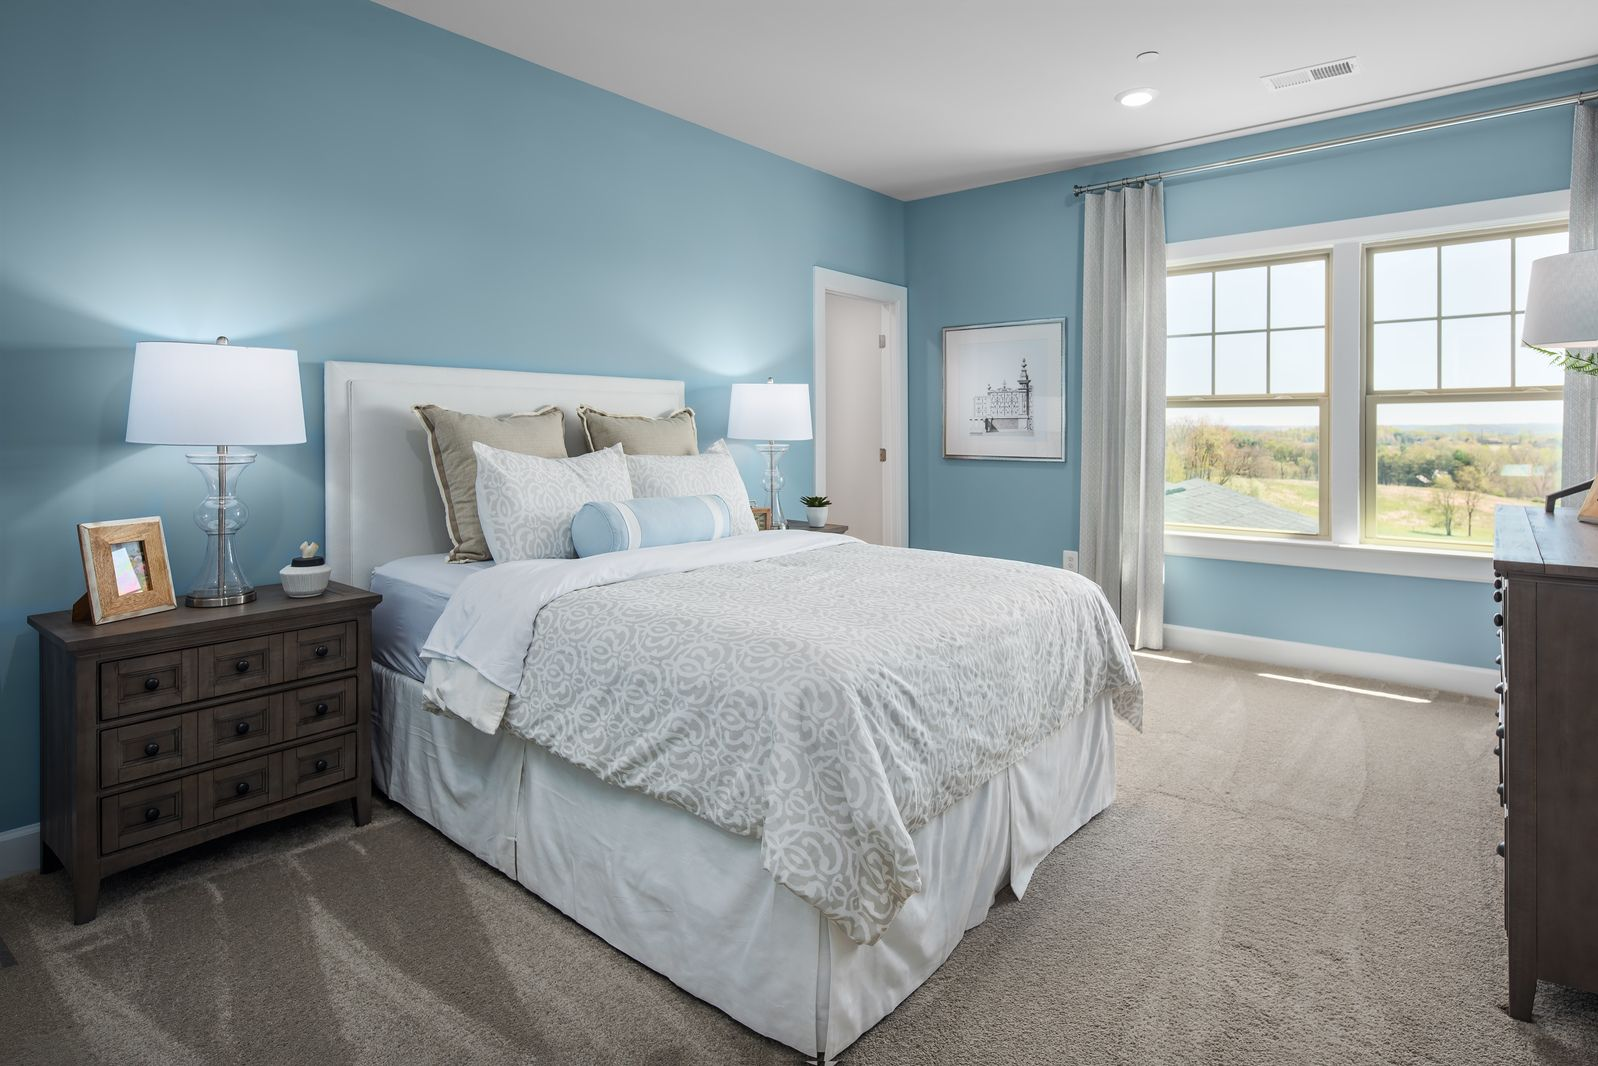 Bedroom featured in the Longwood By NVHomes in Washington, MD